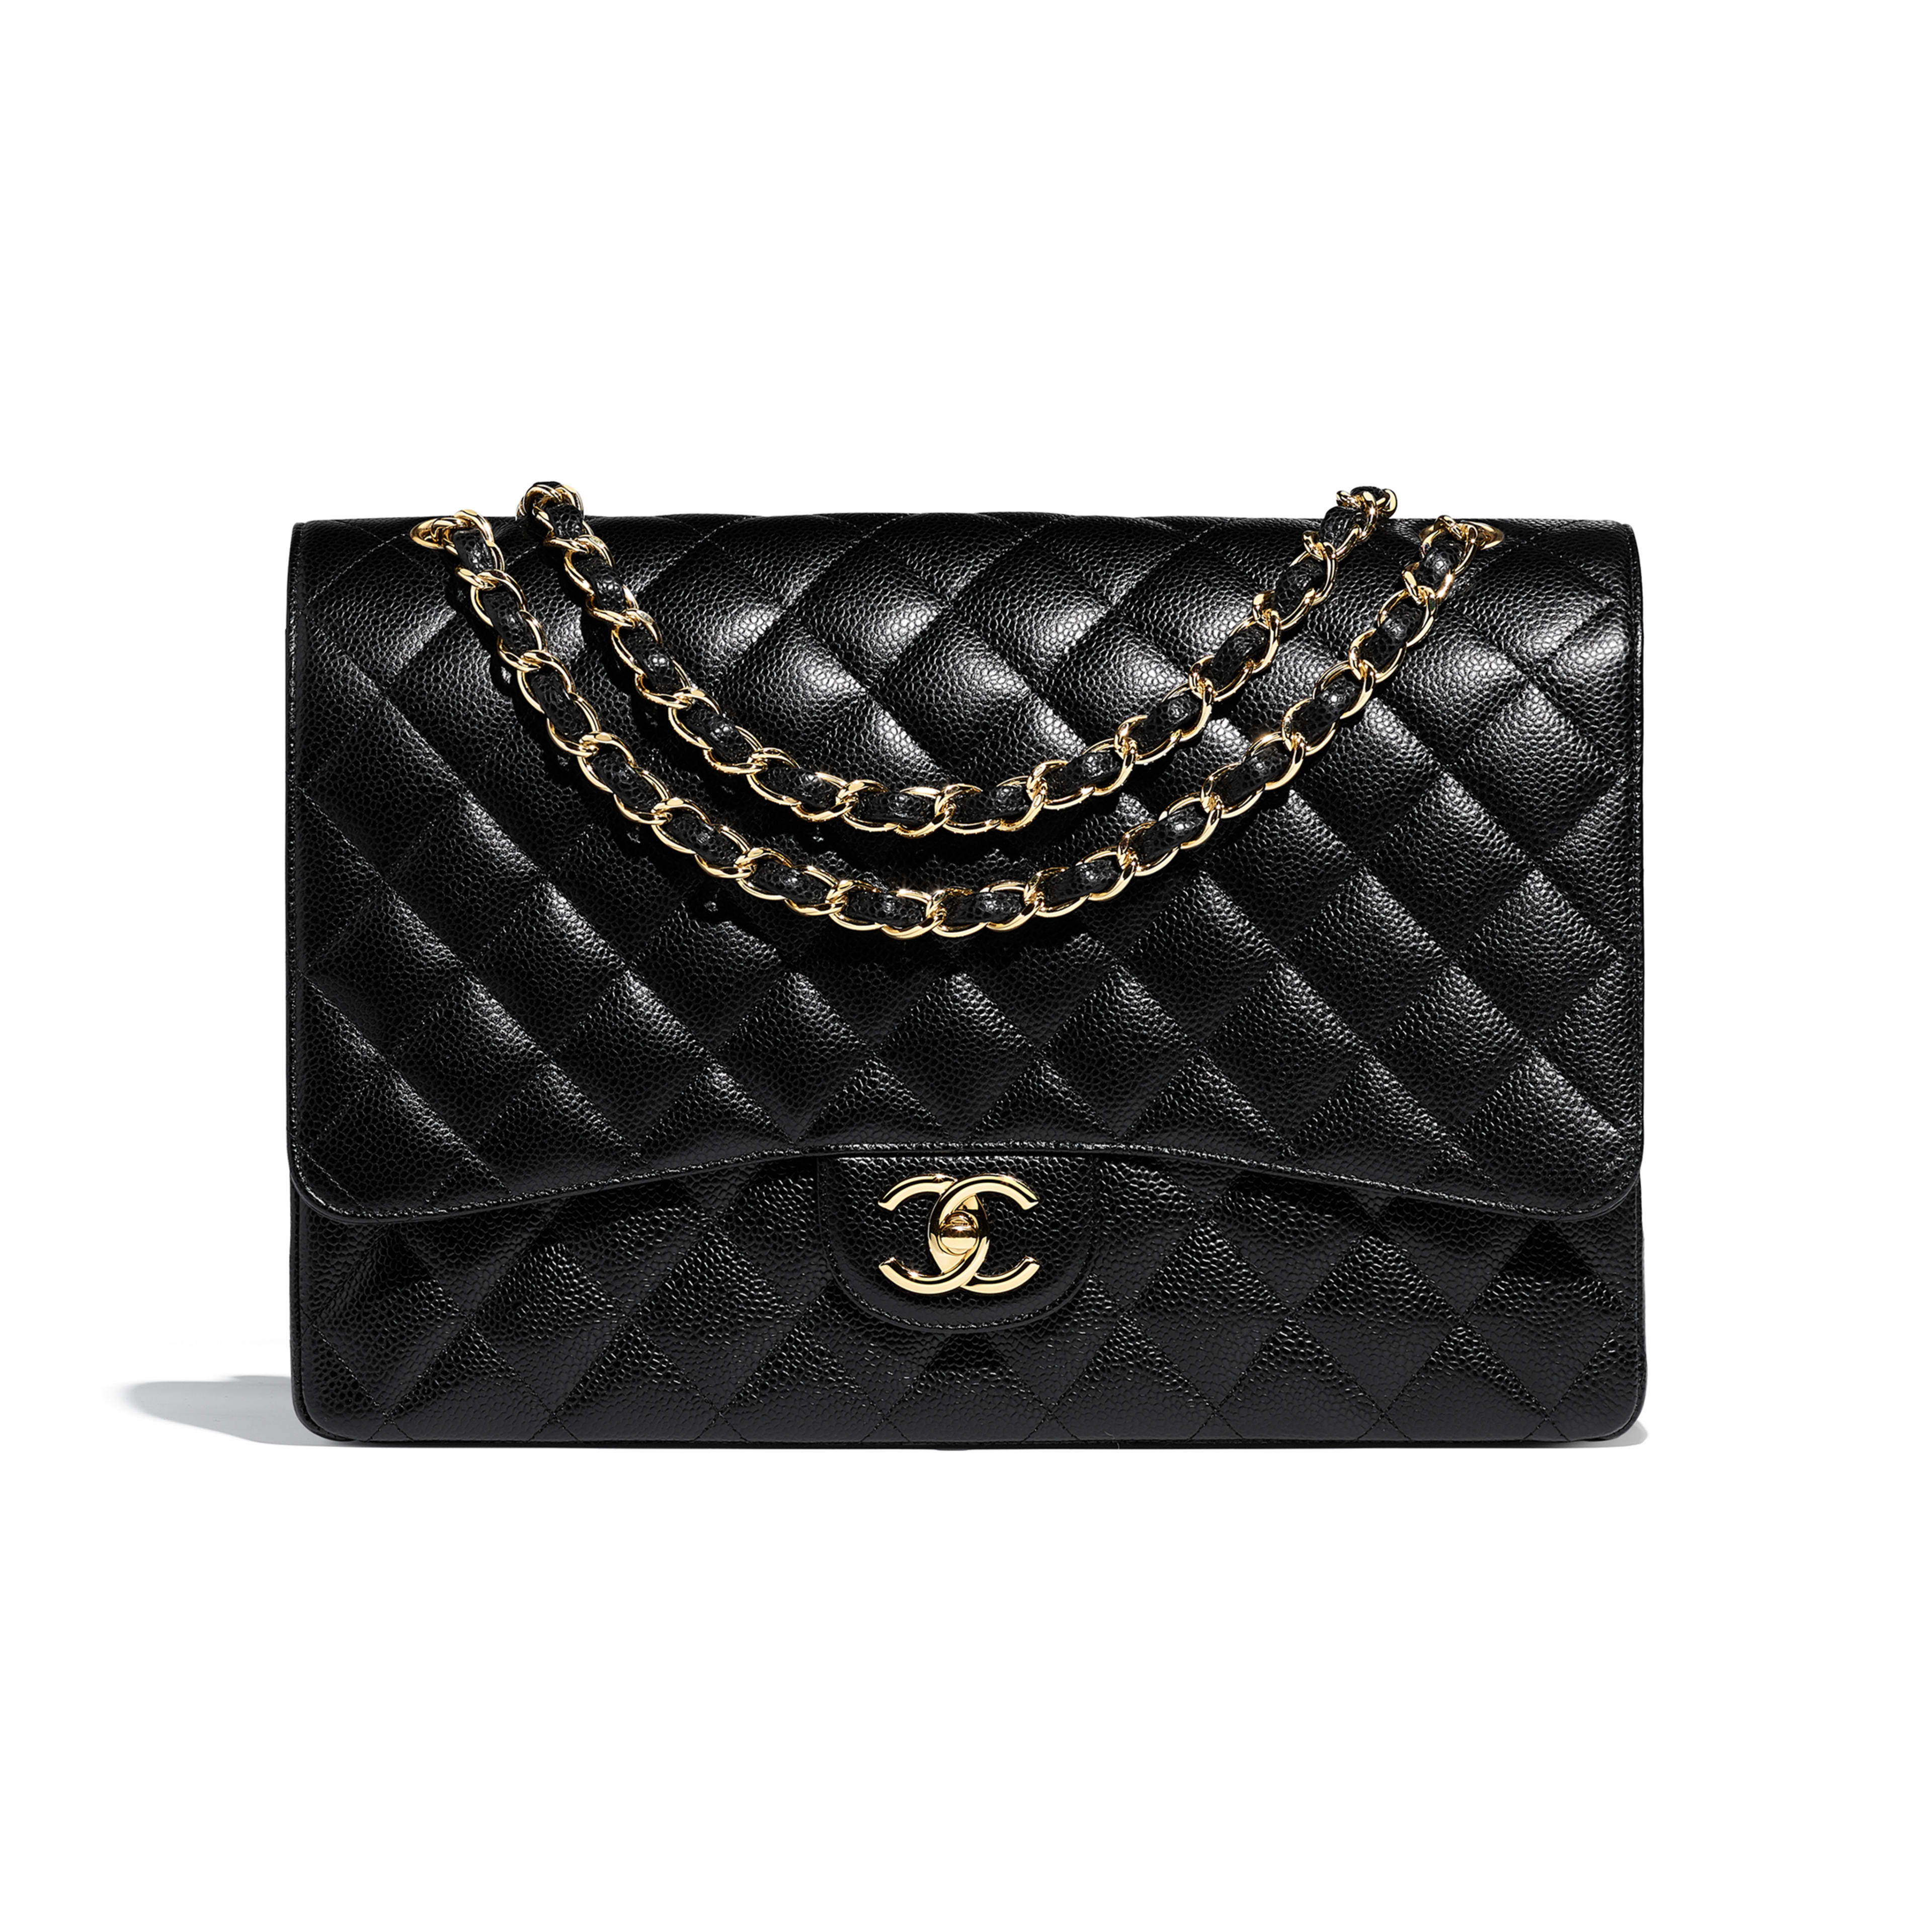 Maxi Classic Handbag - Black - Grained Calfskin   Gold-Tone Metal - Default  view ... c8cf31fccf